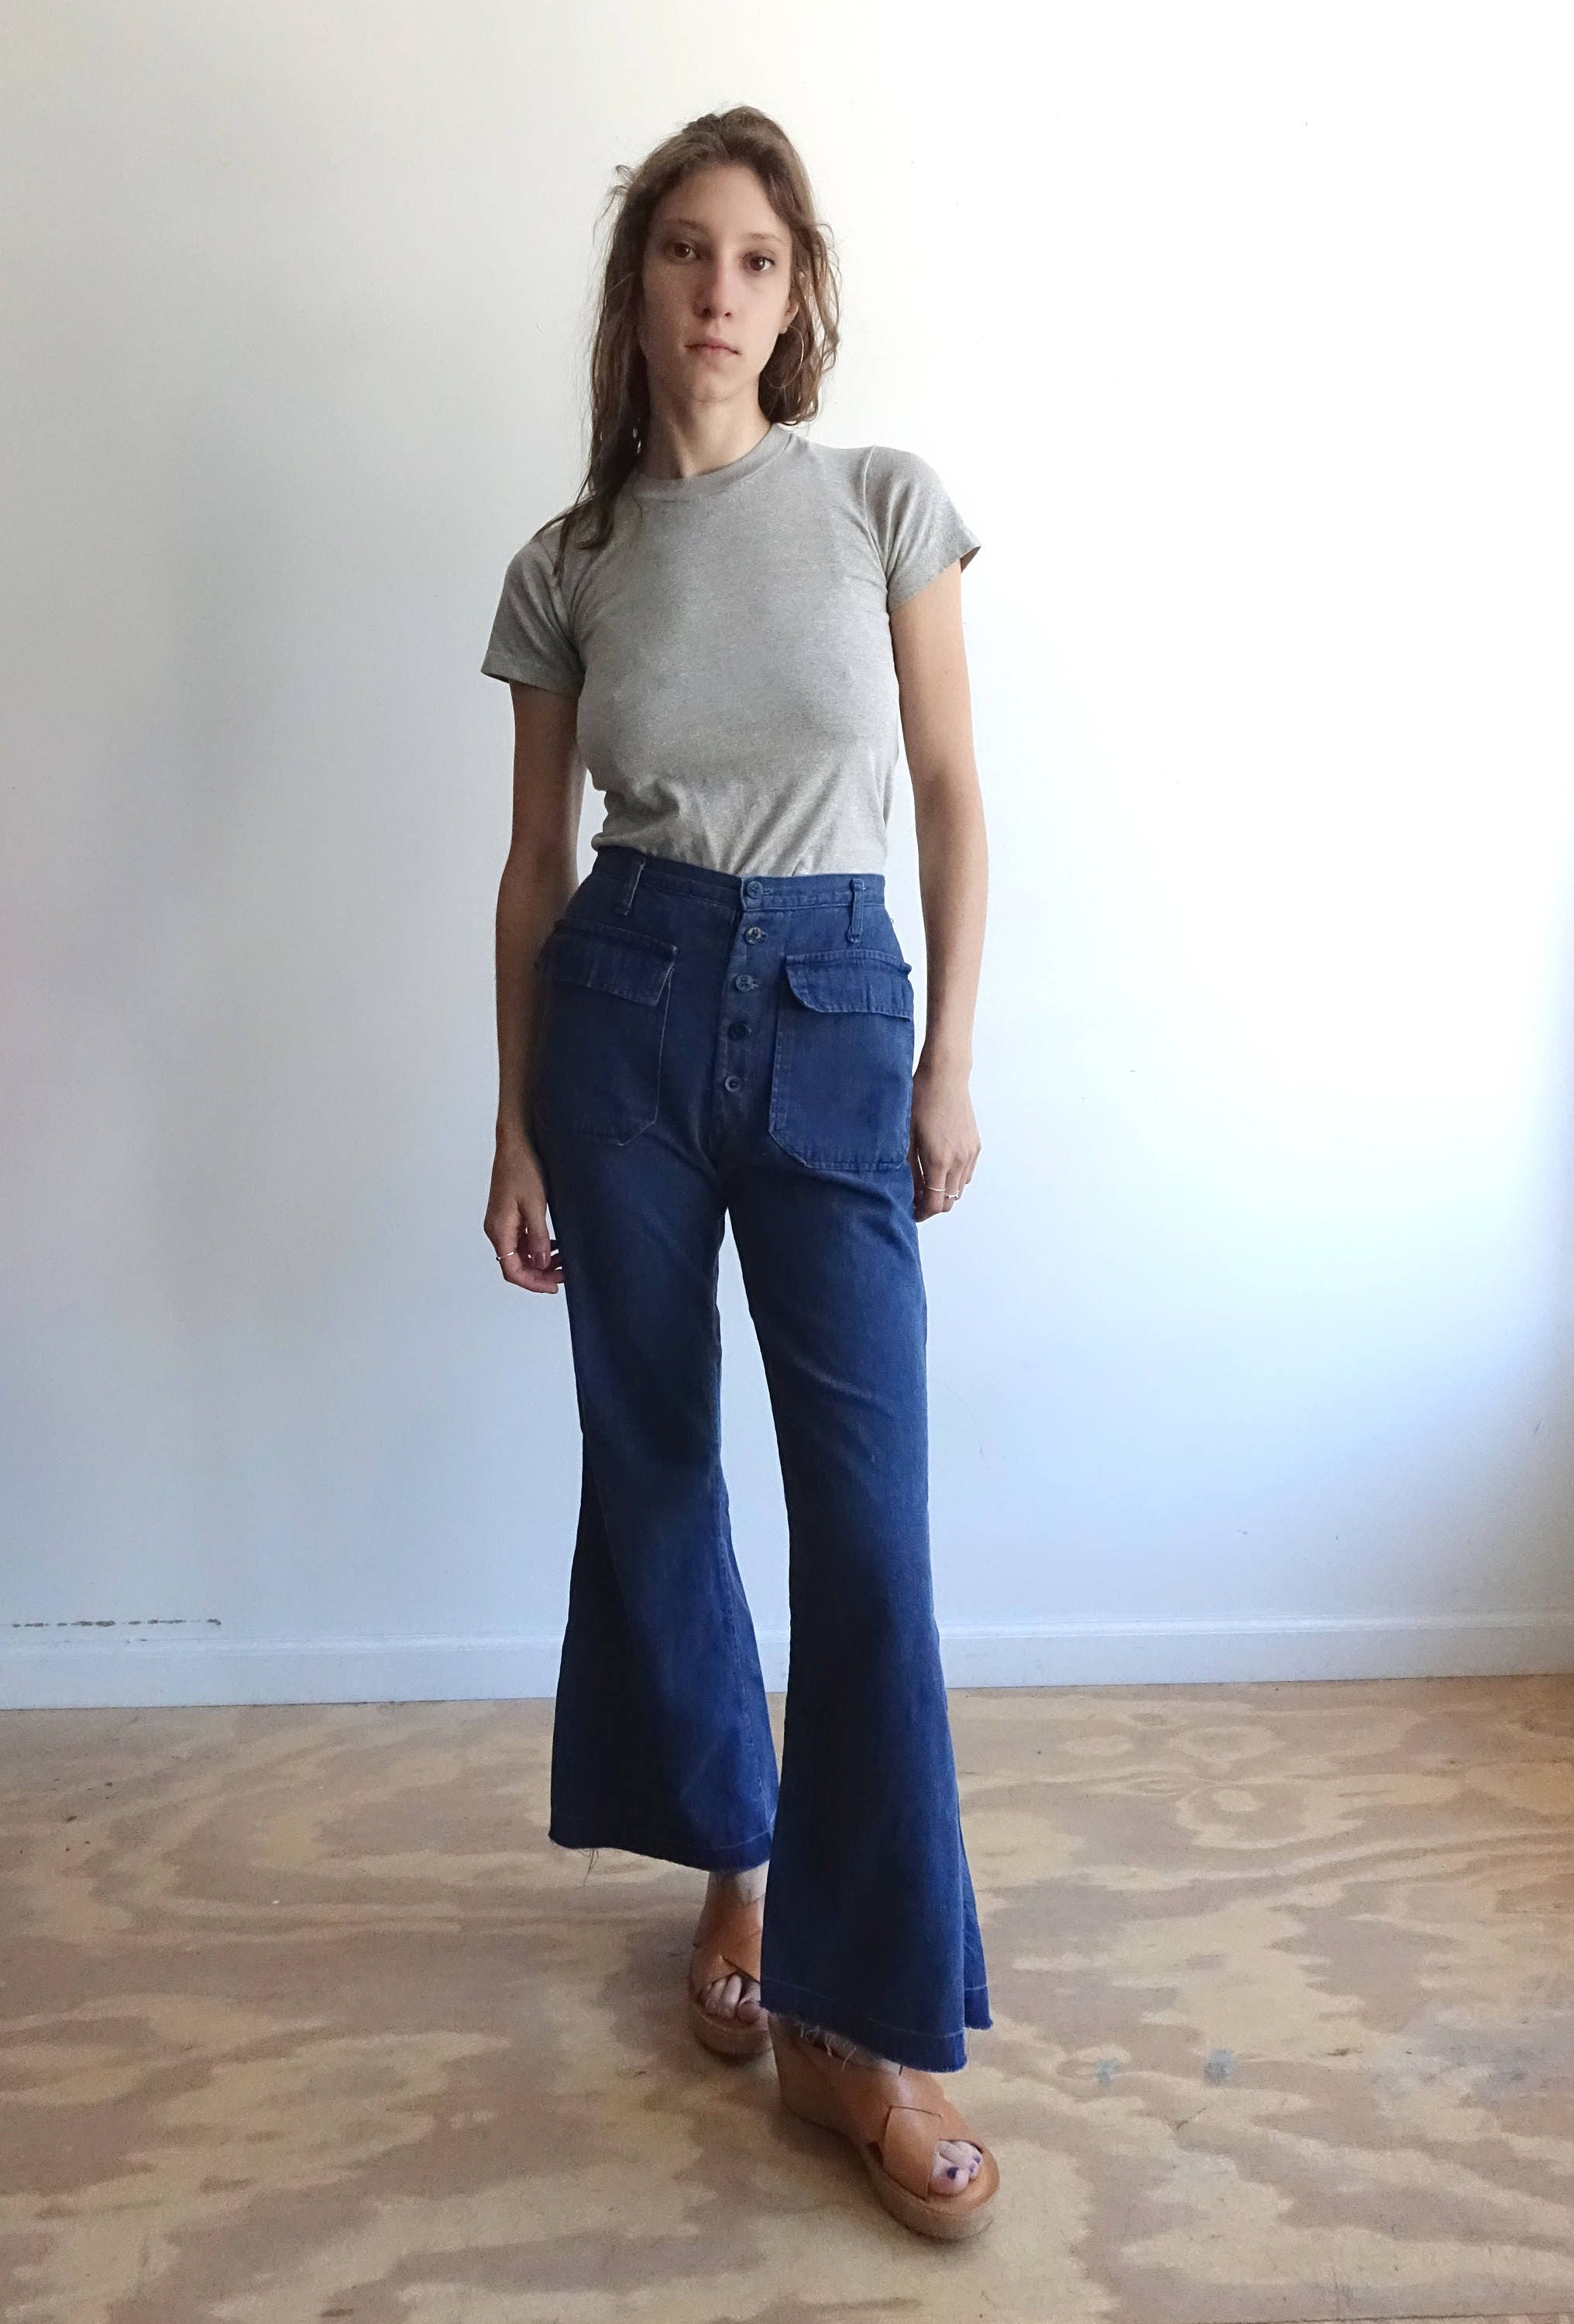 Vintage 70s Sailor Pants/ High Waisted Dark Wash Bell Bottom Denim/ Patch Pockets/ Button Fly/ by bottleofbread